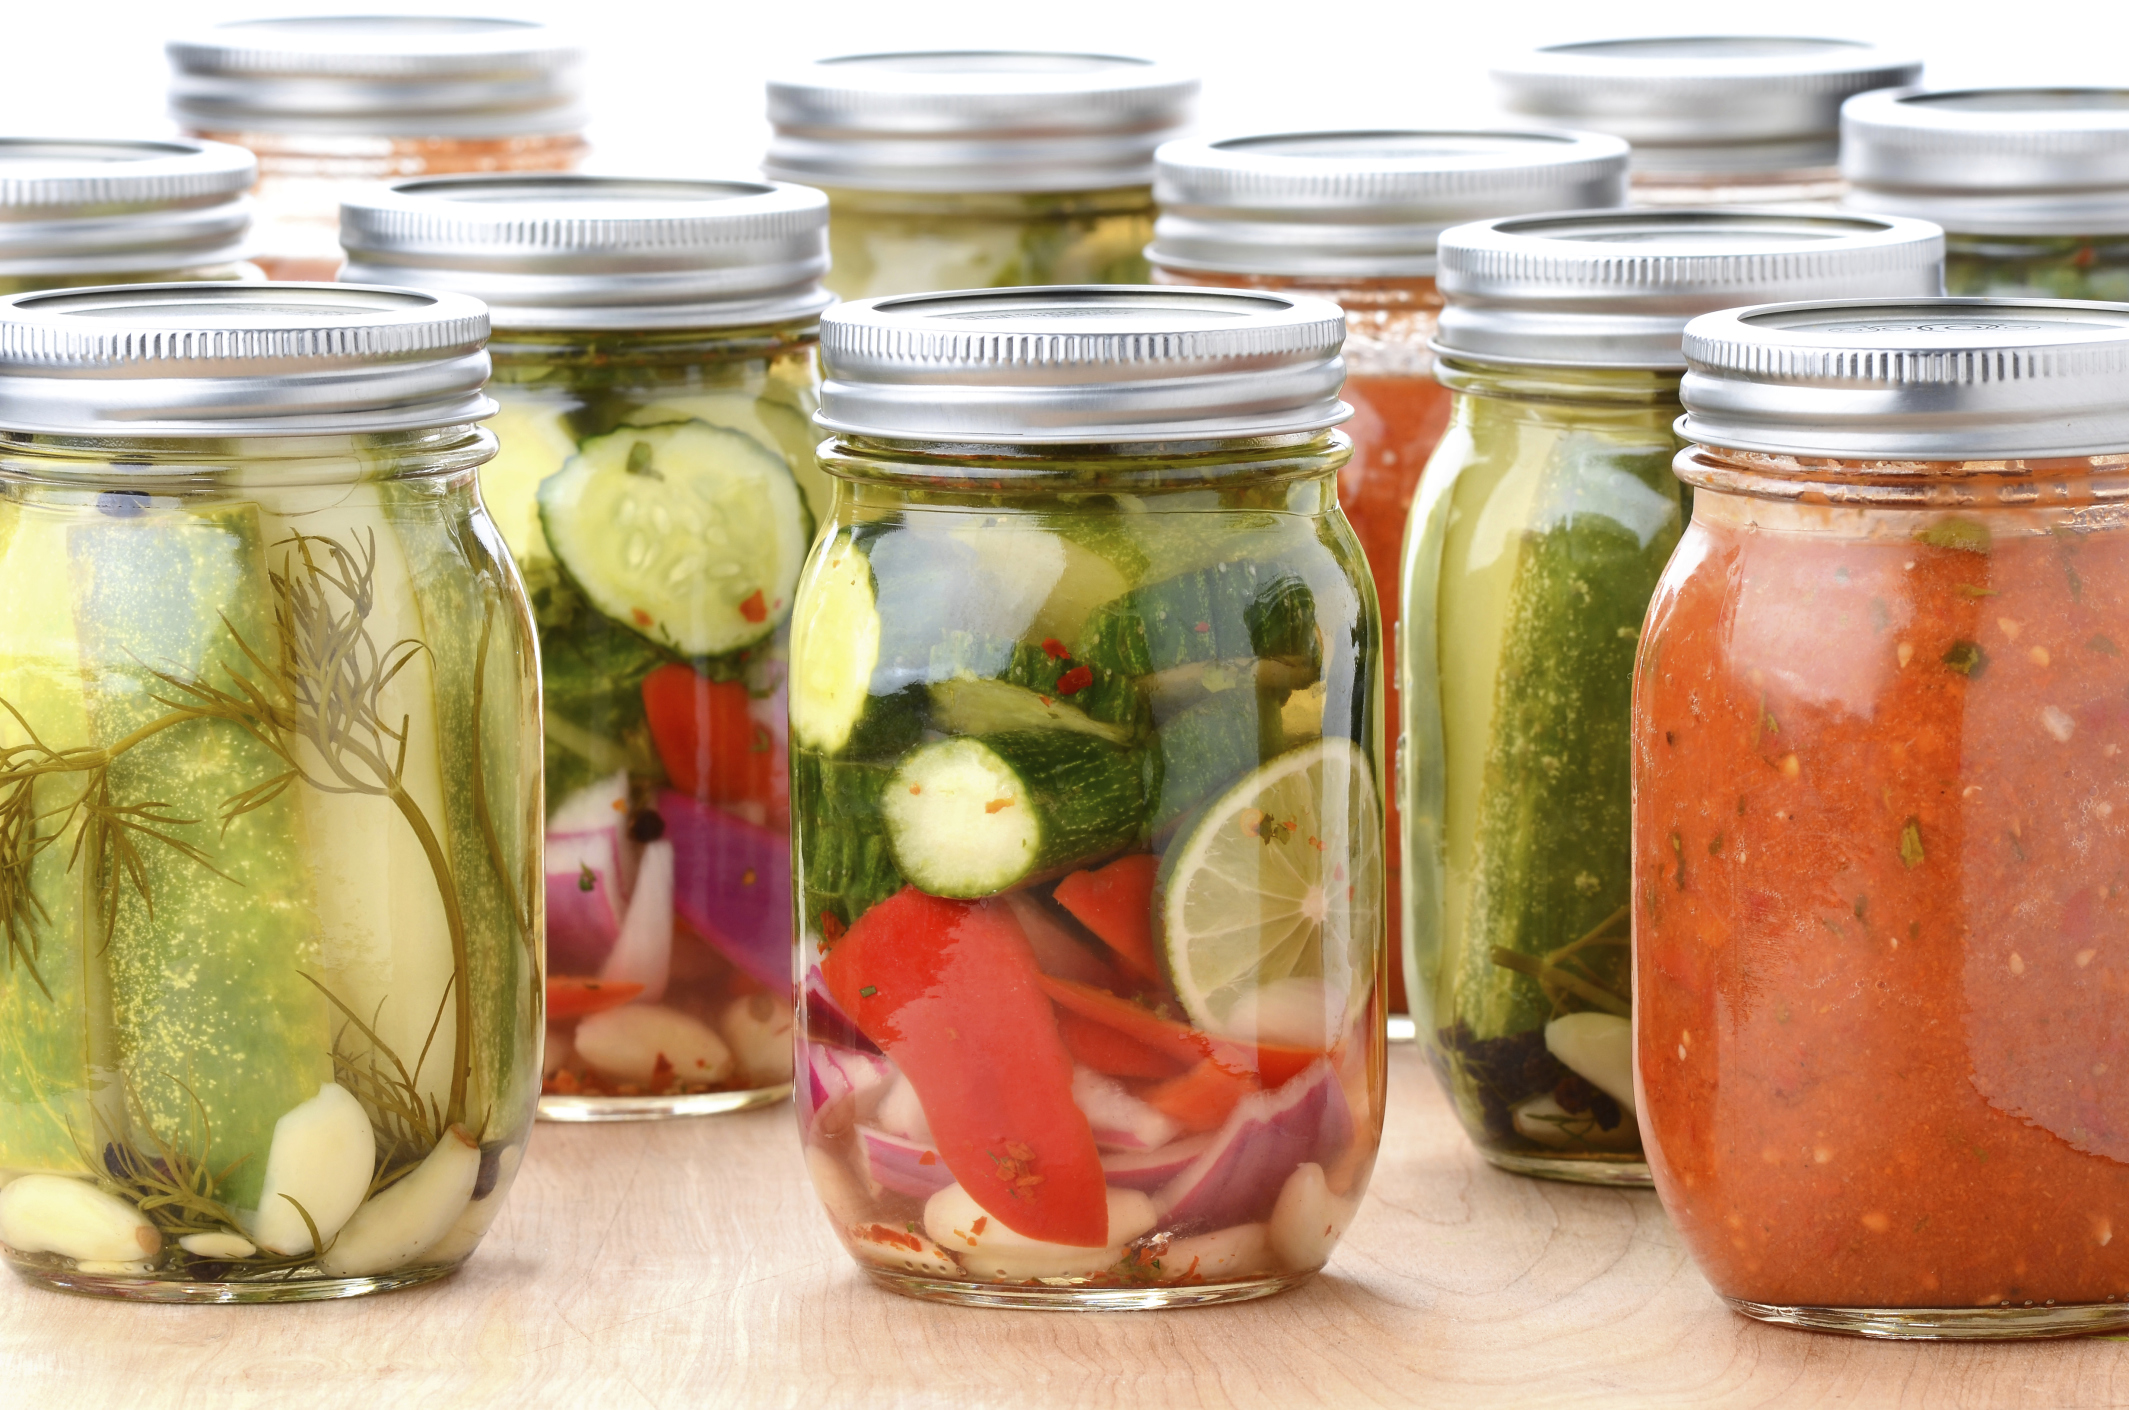 A wide variety of garden vegetables can be canned or pickled.